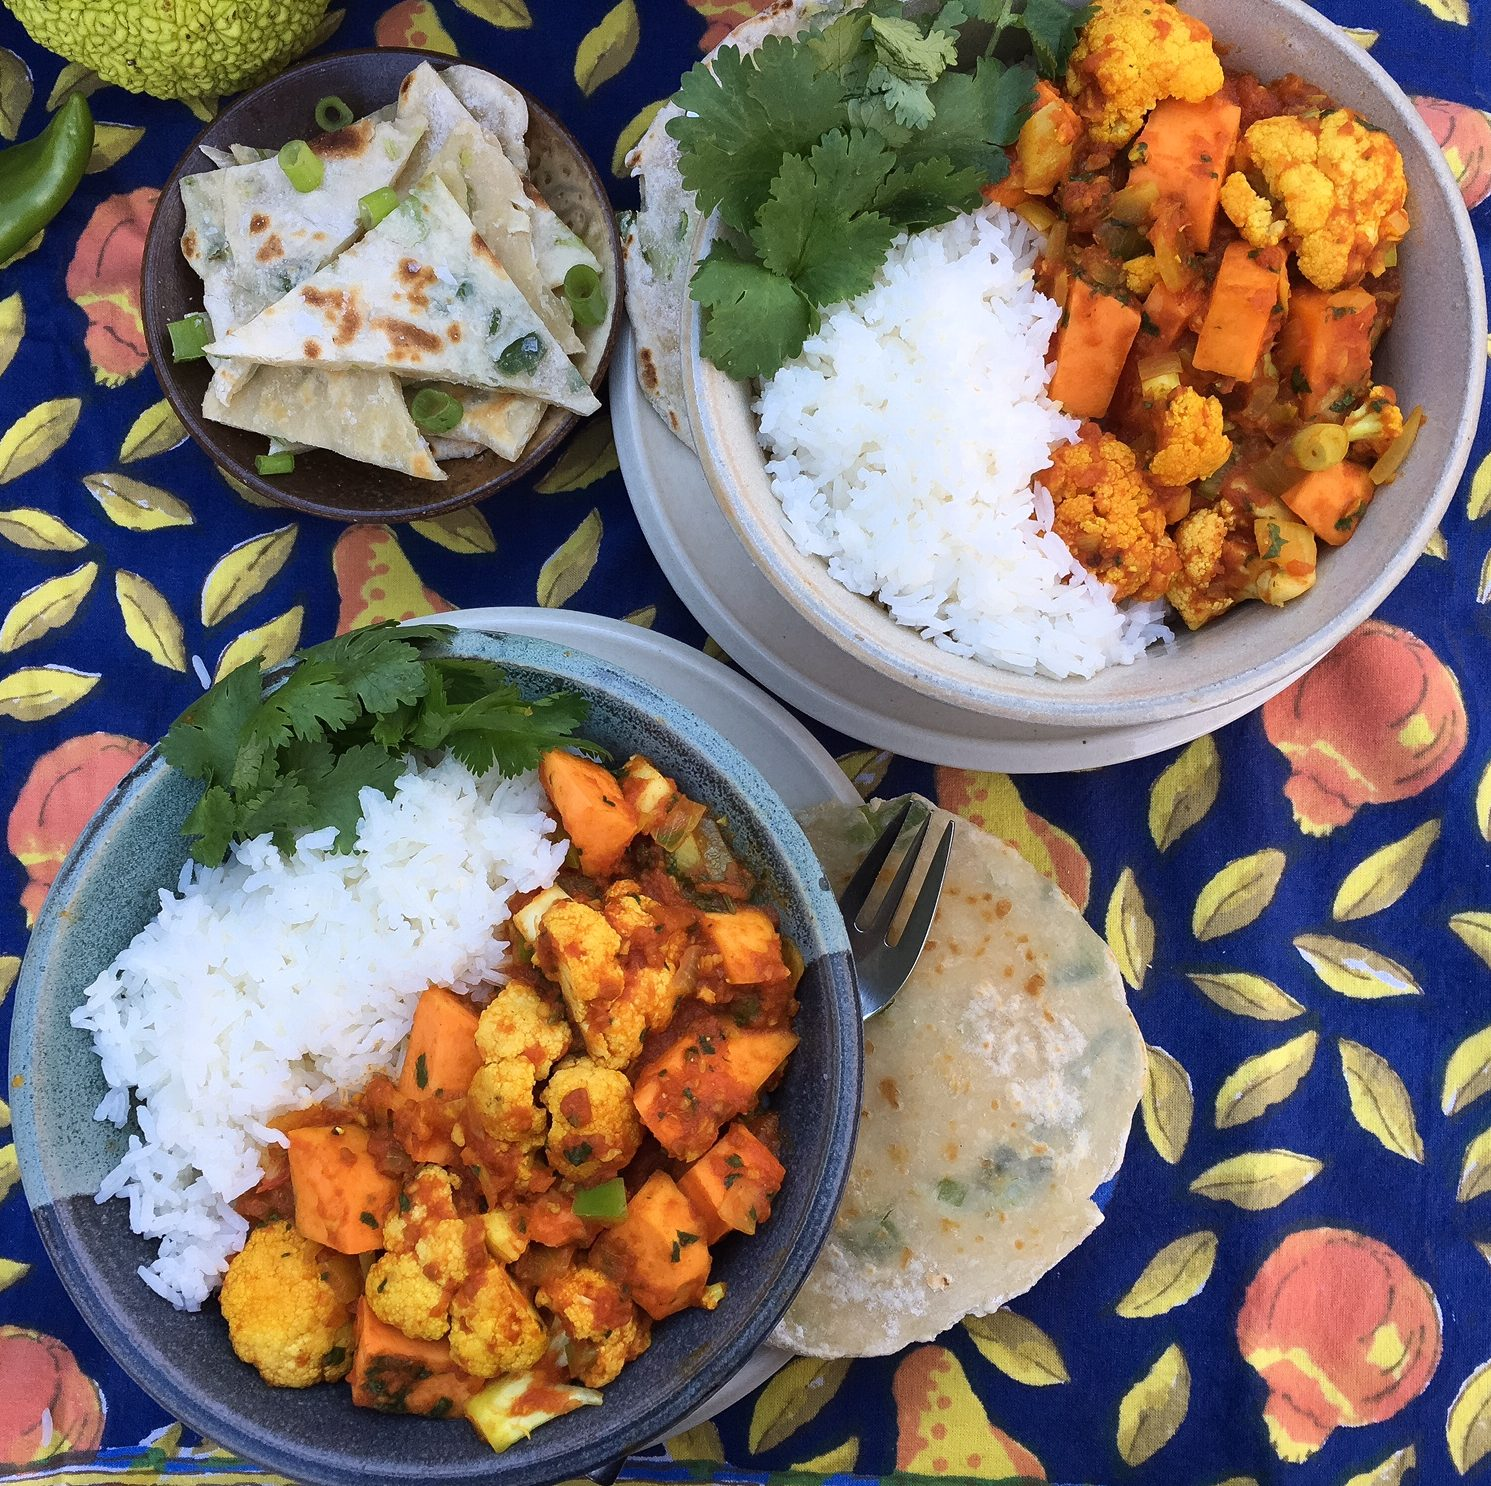 aloo gobi, sweet potatoes, potatoes, curry, cauliflower, turmeric, flatbread